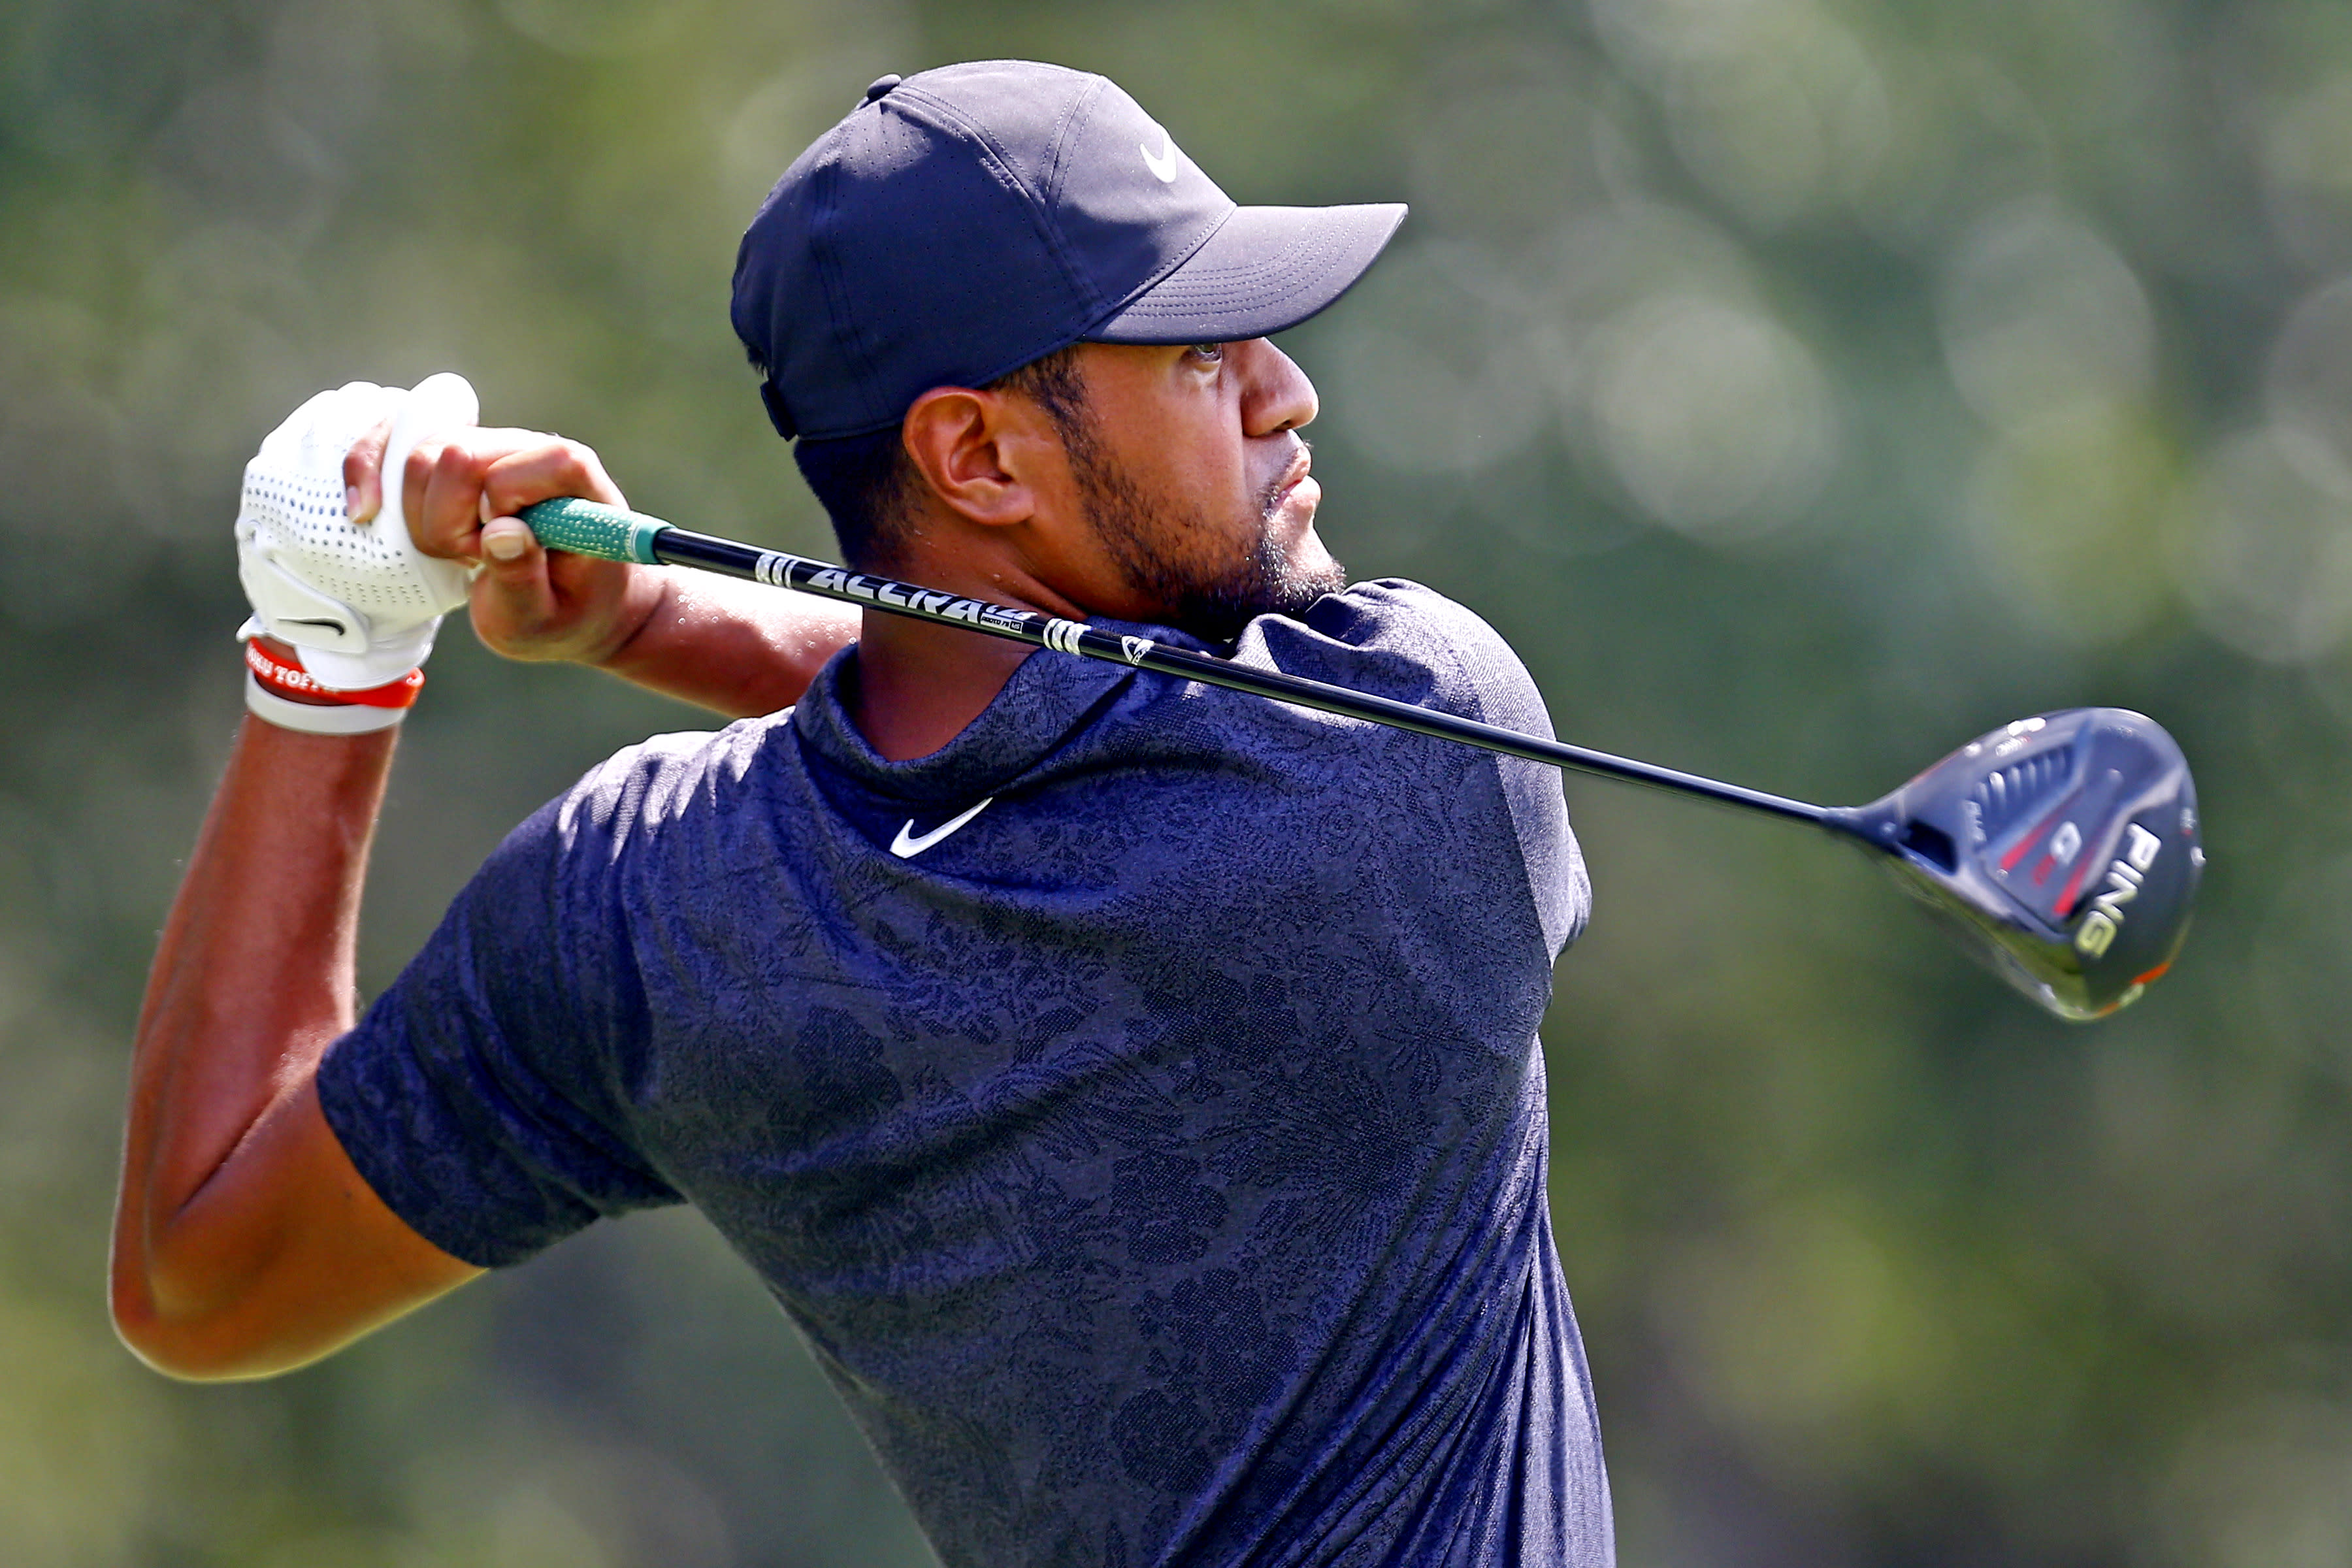 Tony Finau to his Presidents Cup opponents: 'Be ready for a dogfight'